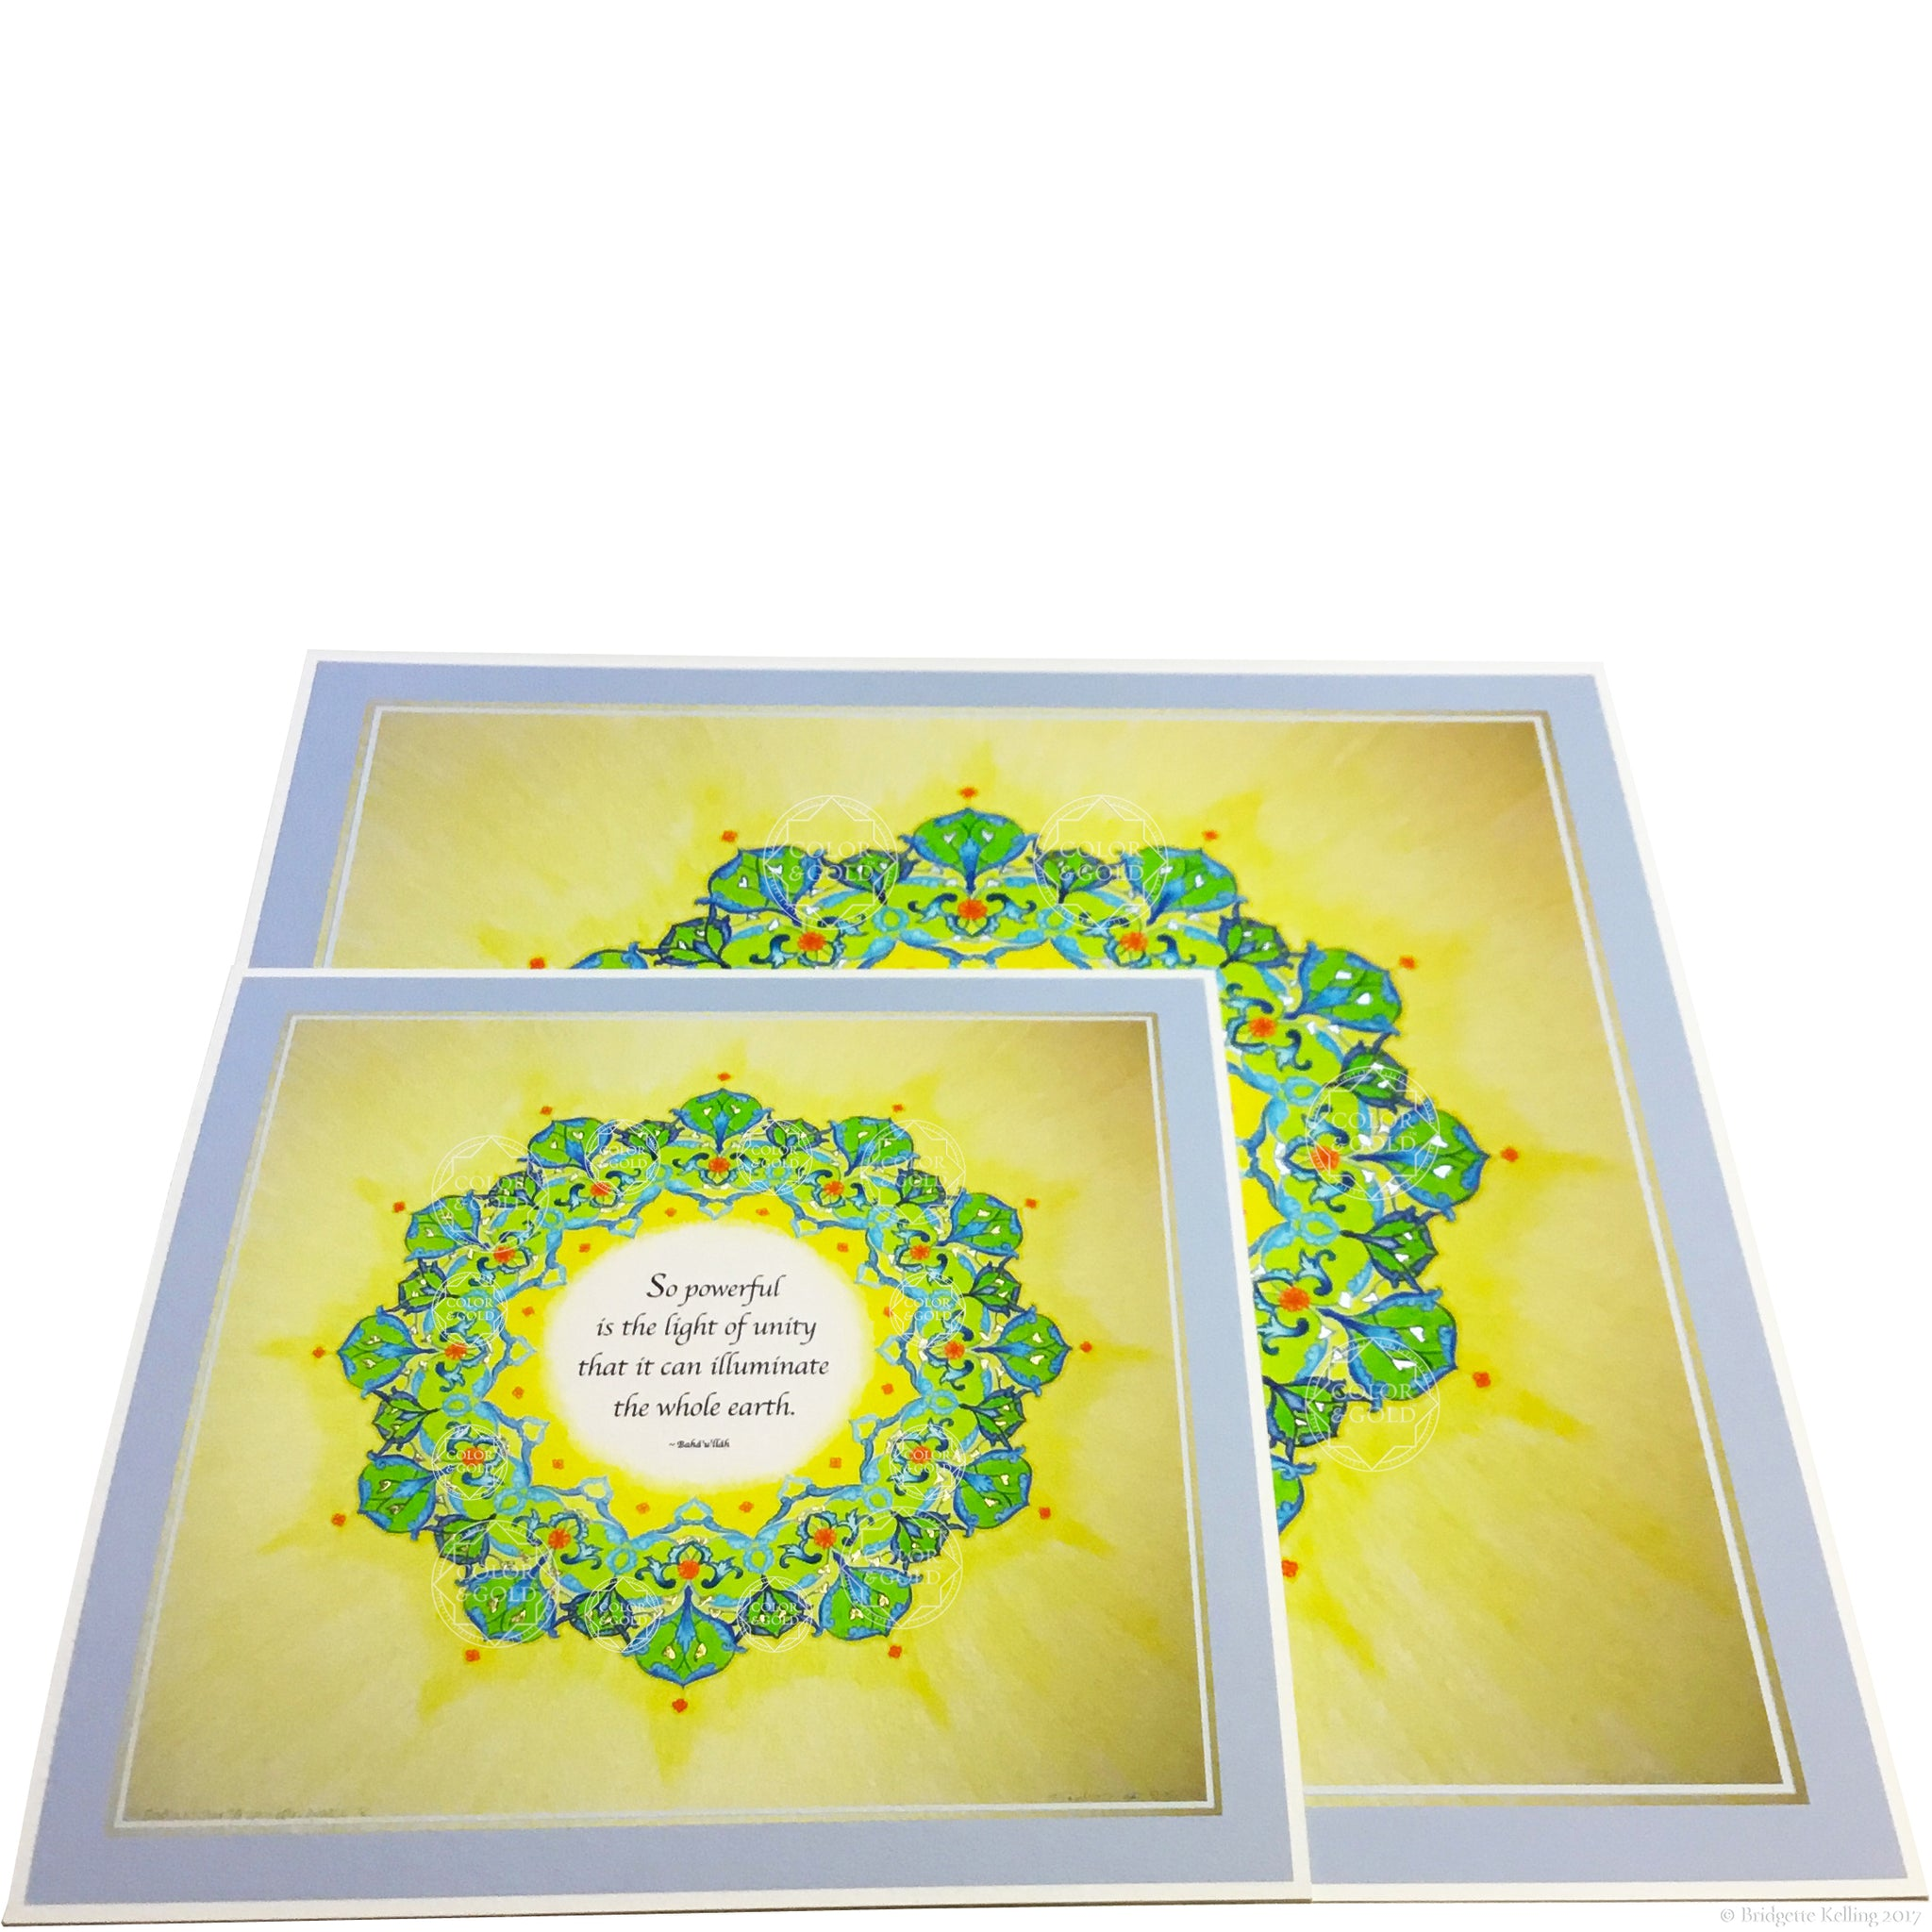 Green, yellow & 24 kt gold and palladium gilded mandalas with a Bahá'í quotation on unity - Color & Gold LLC © Bridgette Kelling